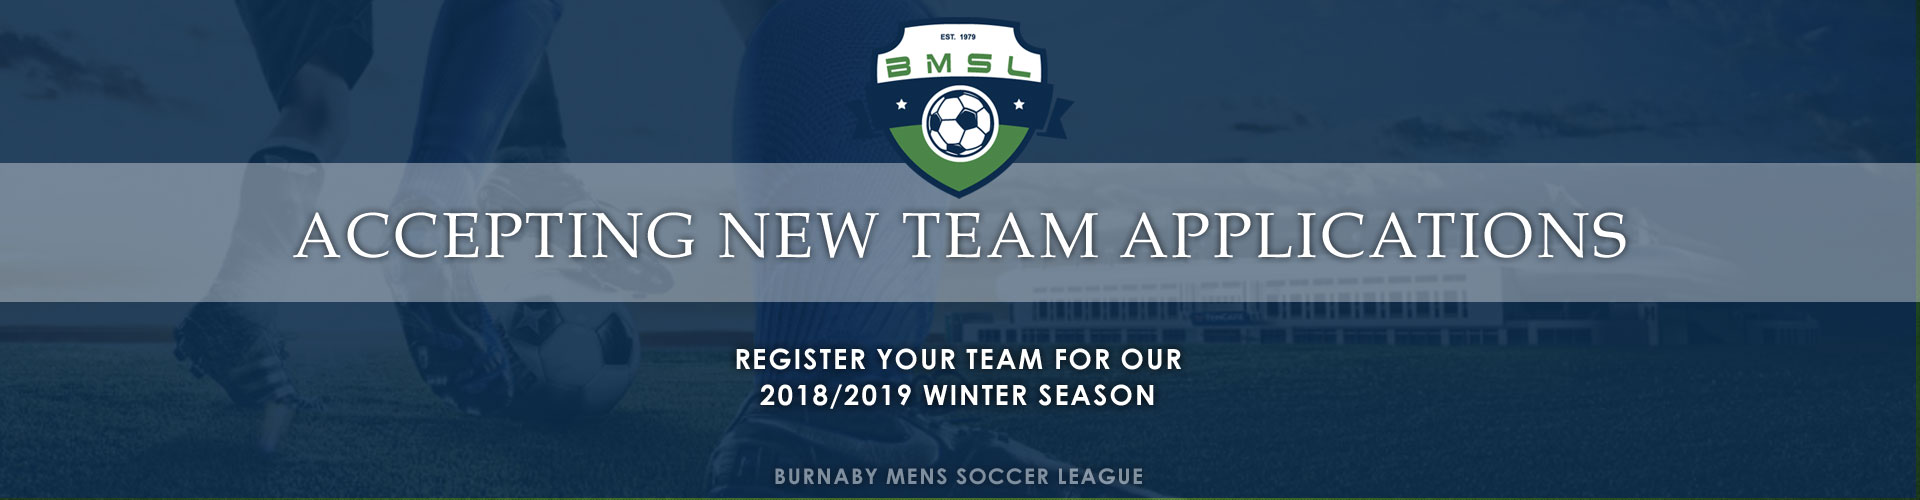 2018 bmsl new team application form